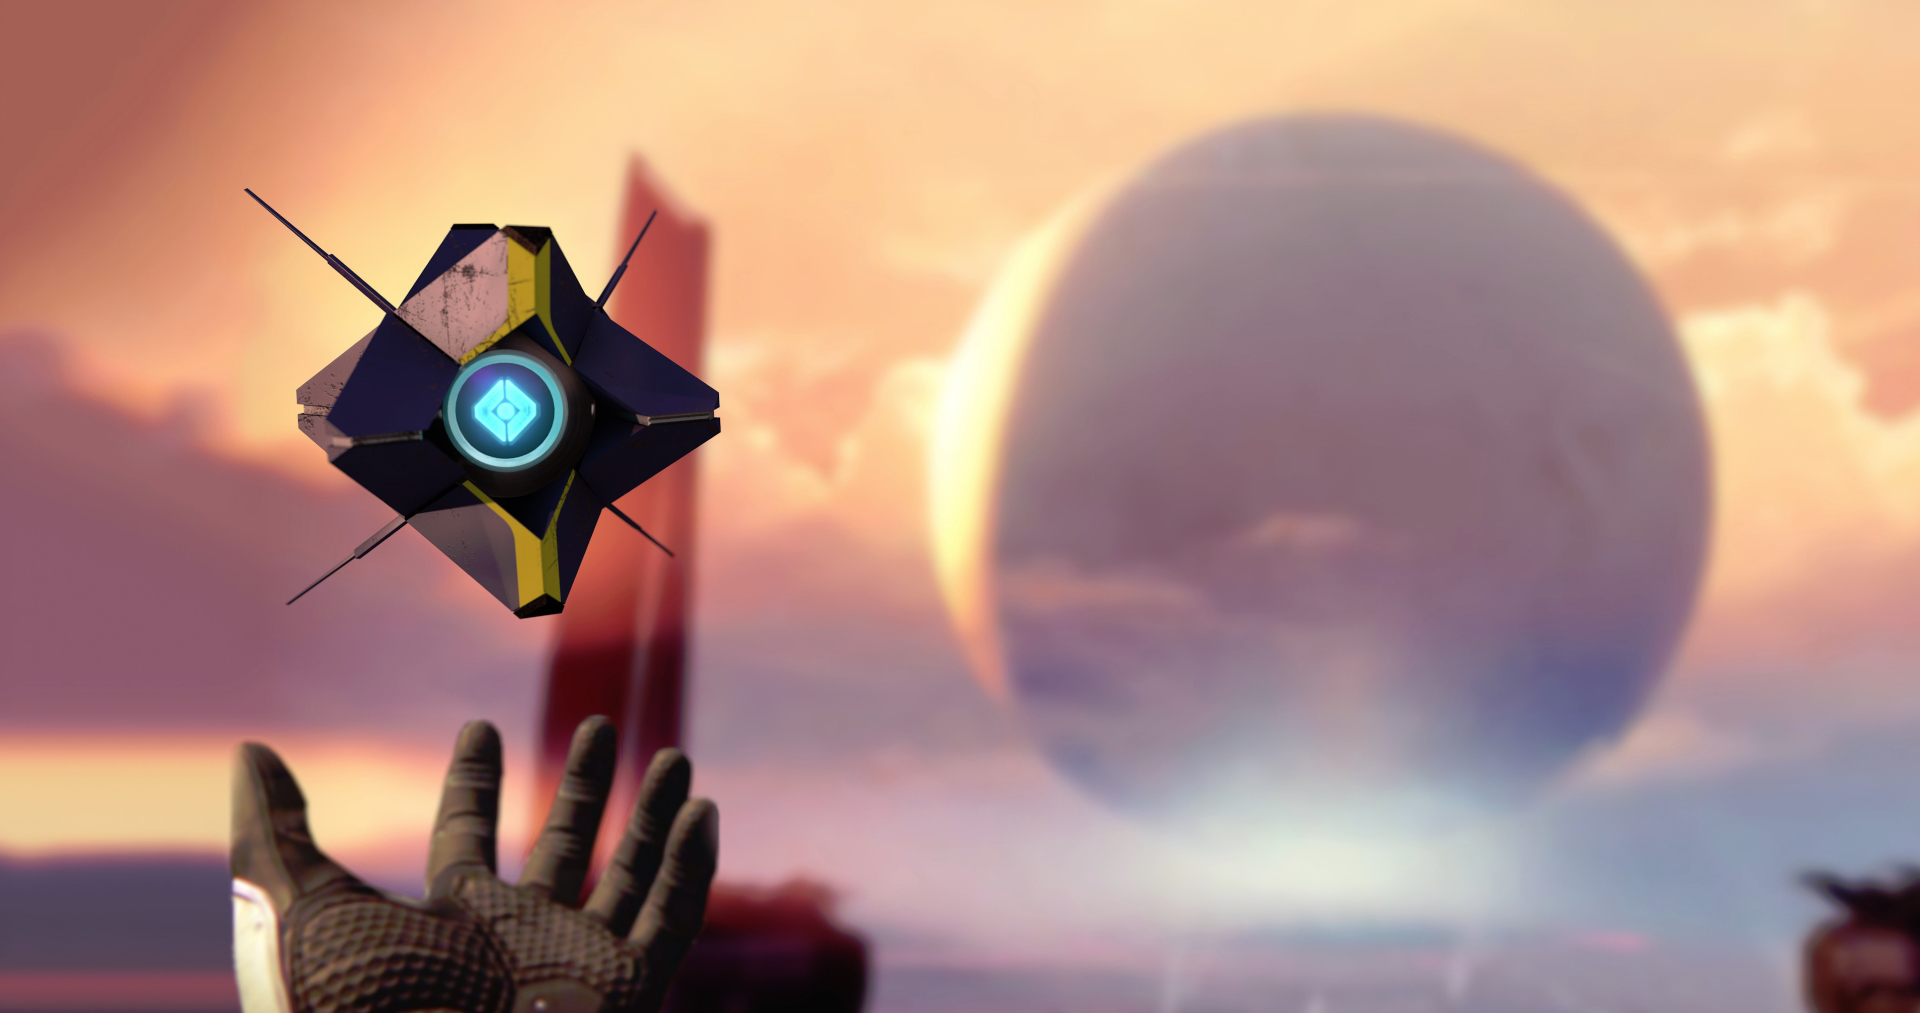 50 Amazing Destiny HD Wallpapers For Desktop (Free